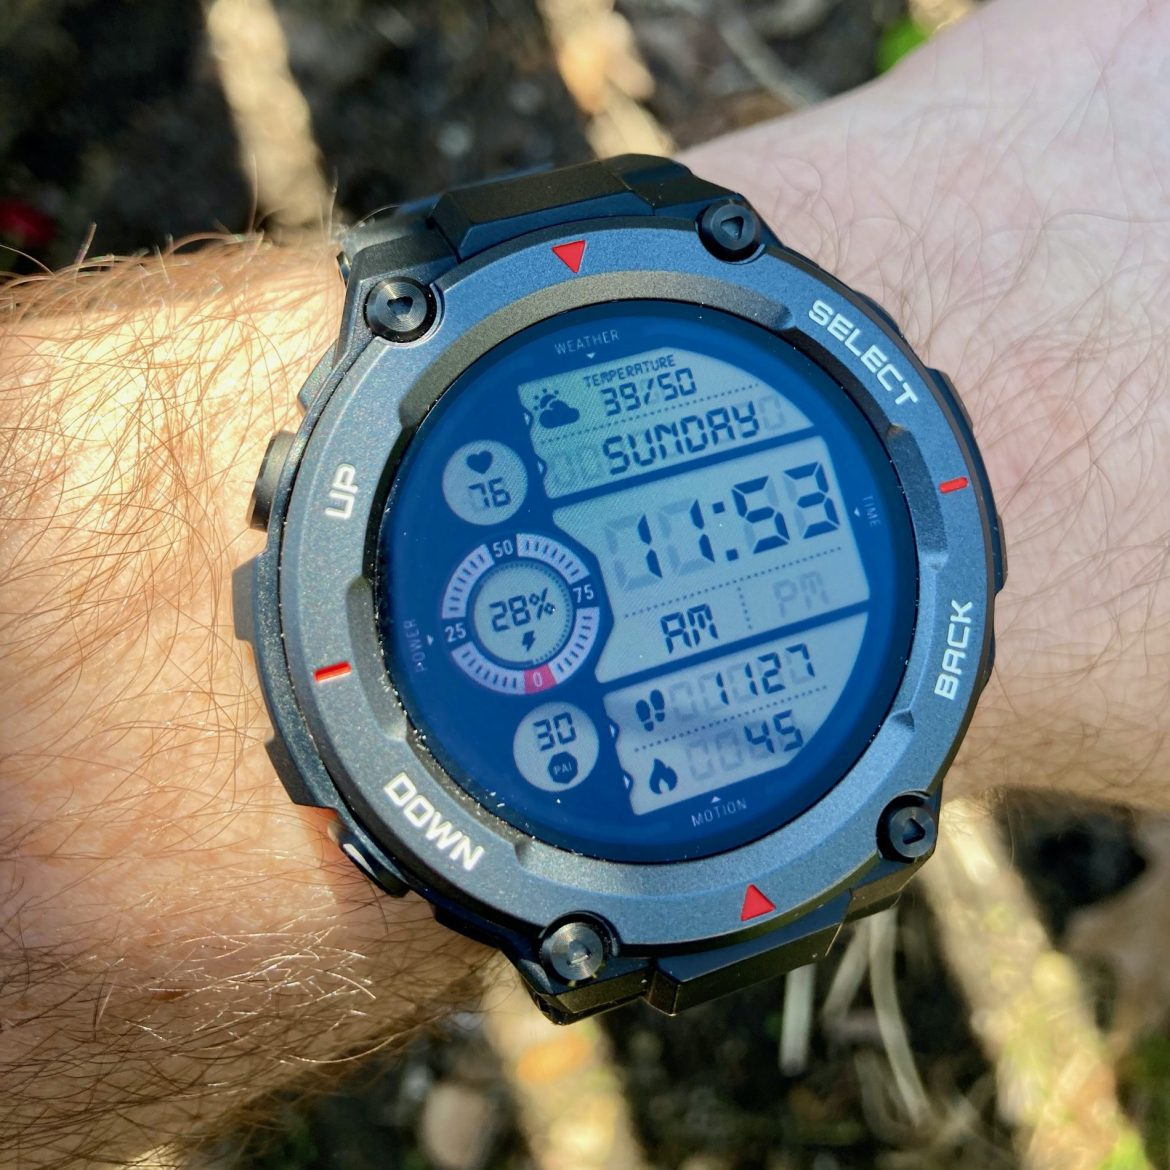 In Review: AmazFit T-Rex Pro